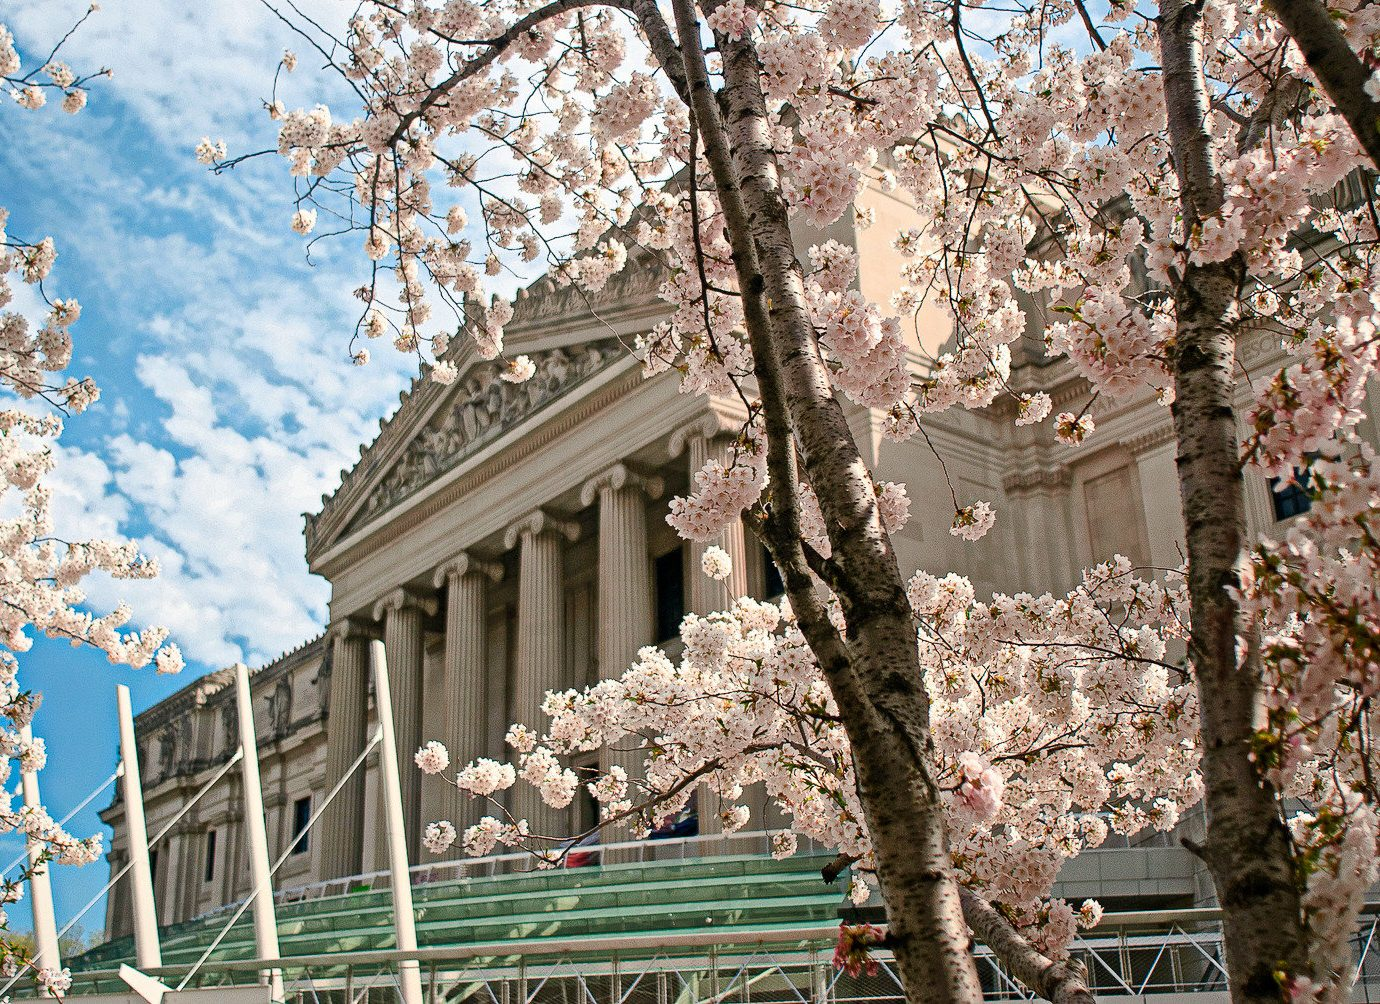 View of Brooklyn Museum with cherry blossom trees in bloom